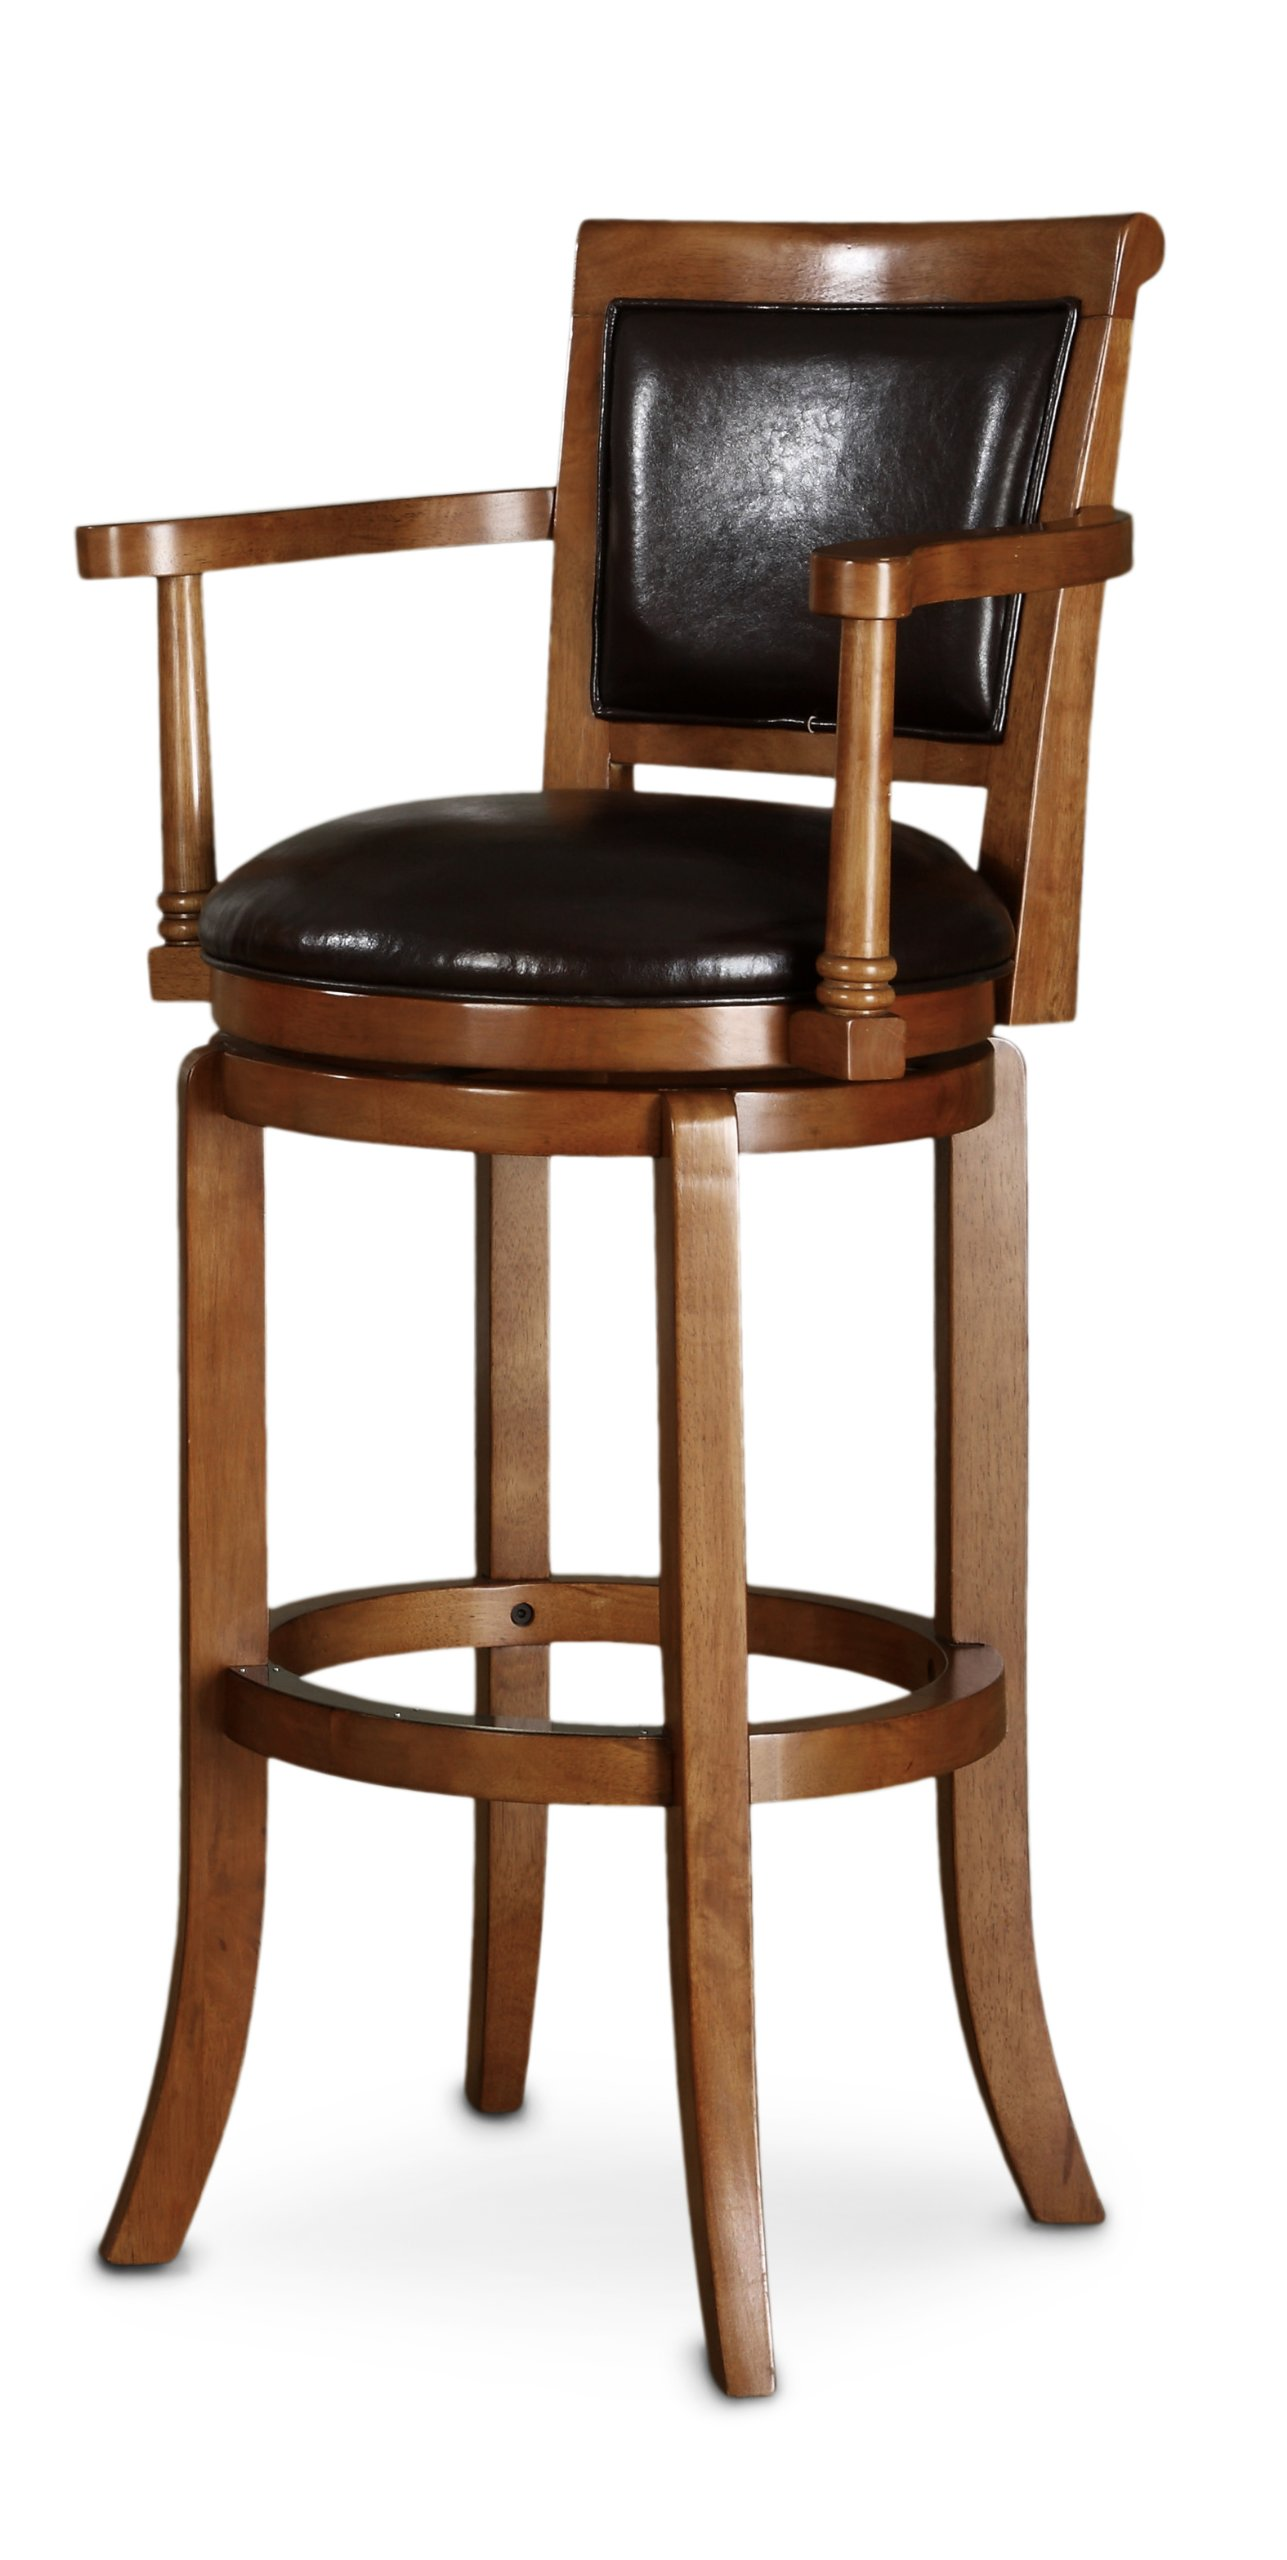 Poundex F4132 Swivel Bar Chair with Arms Brown